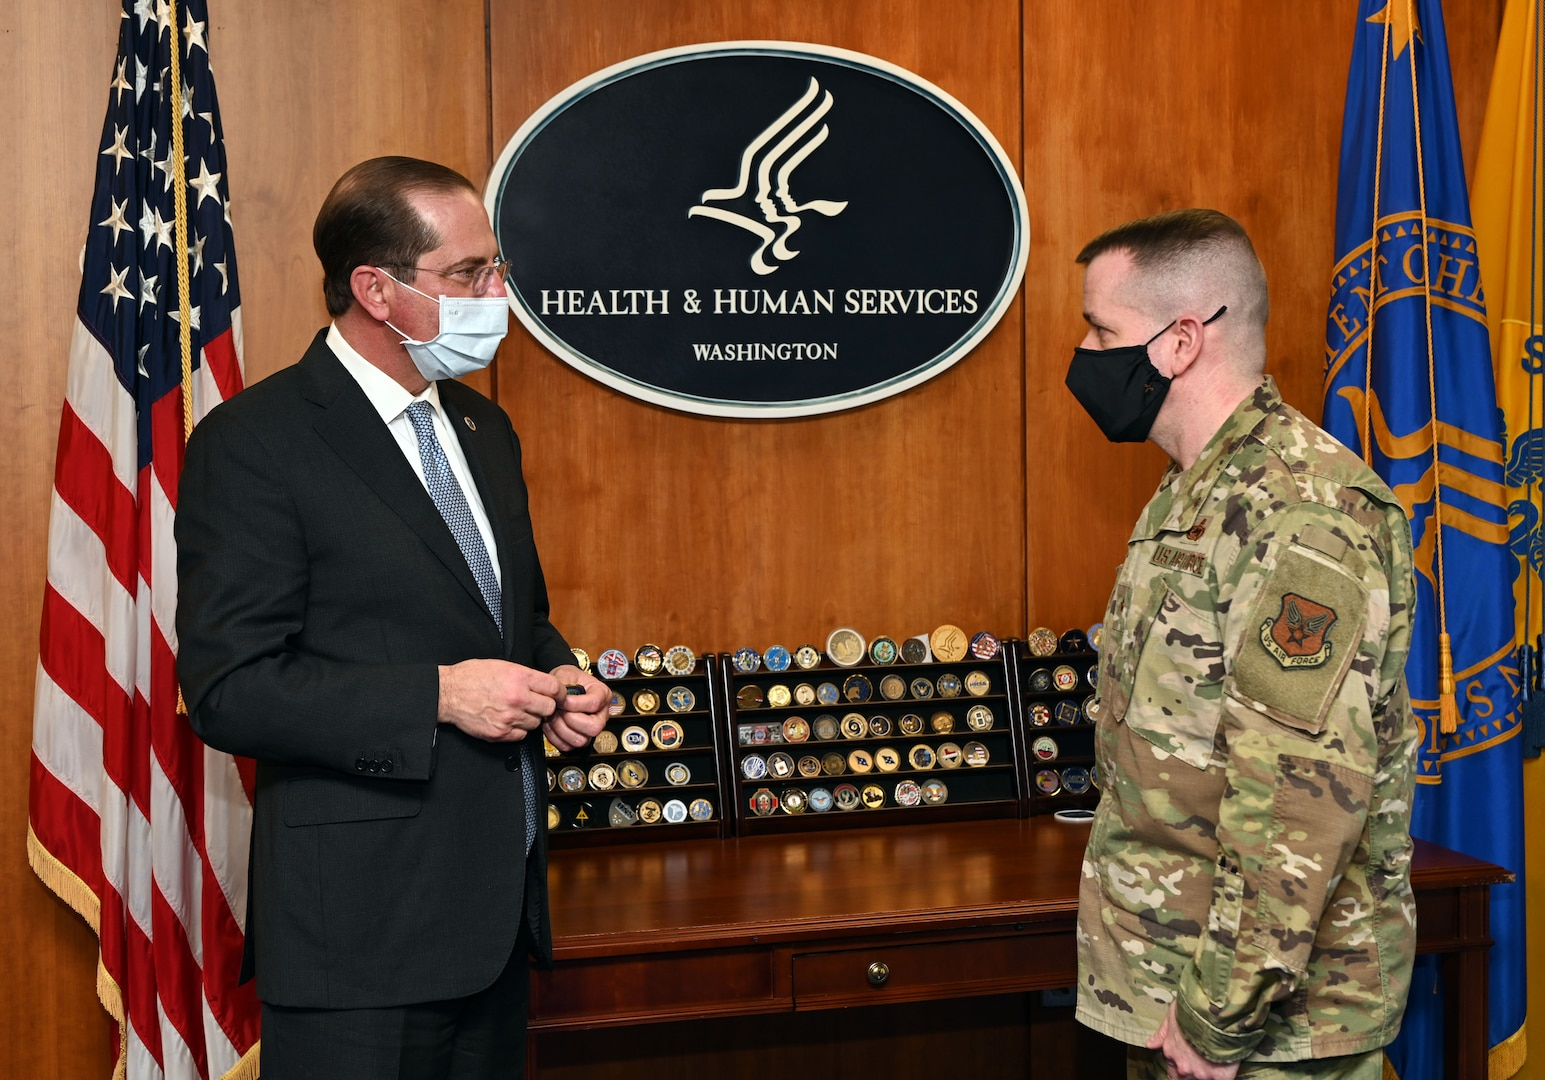 Commander returns after tour with White House COVID-19 Task Force